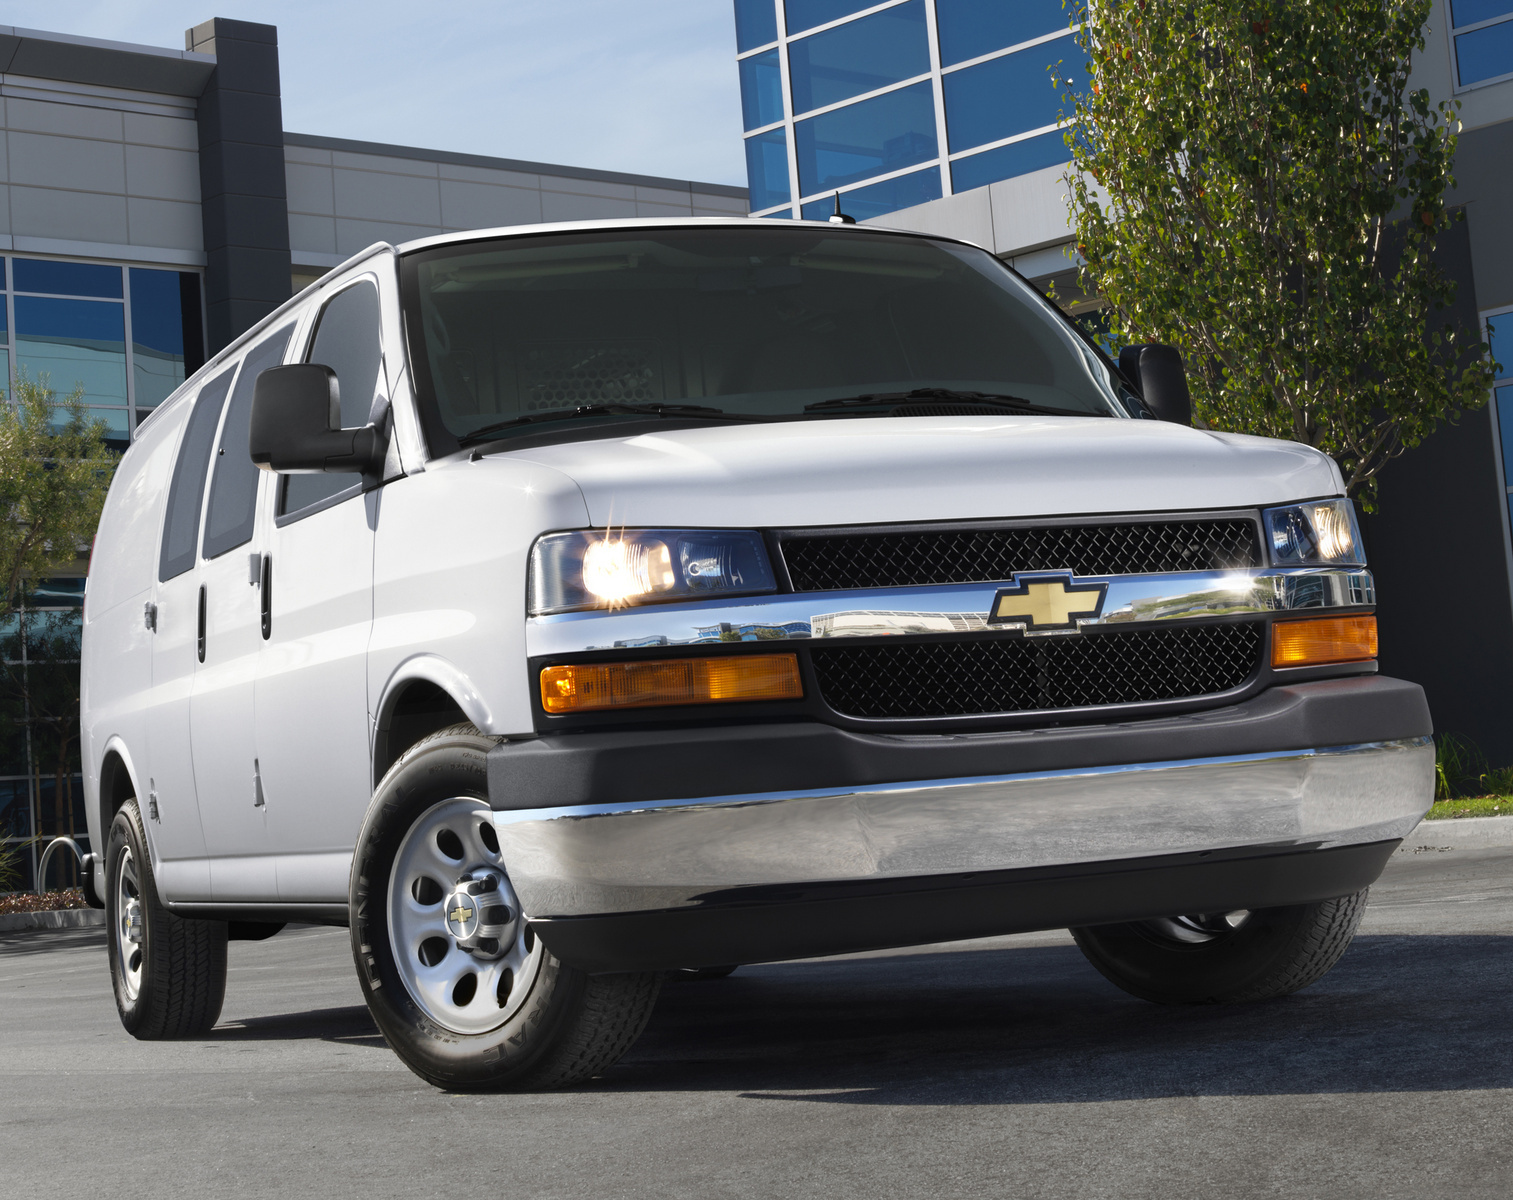 All Chevy 2014 chevy express : 2014 Chevrolet Express - Overview - CarGurus